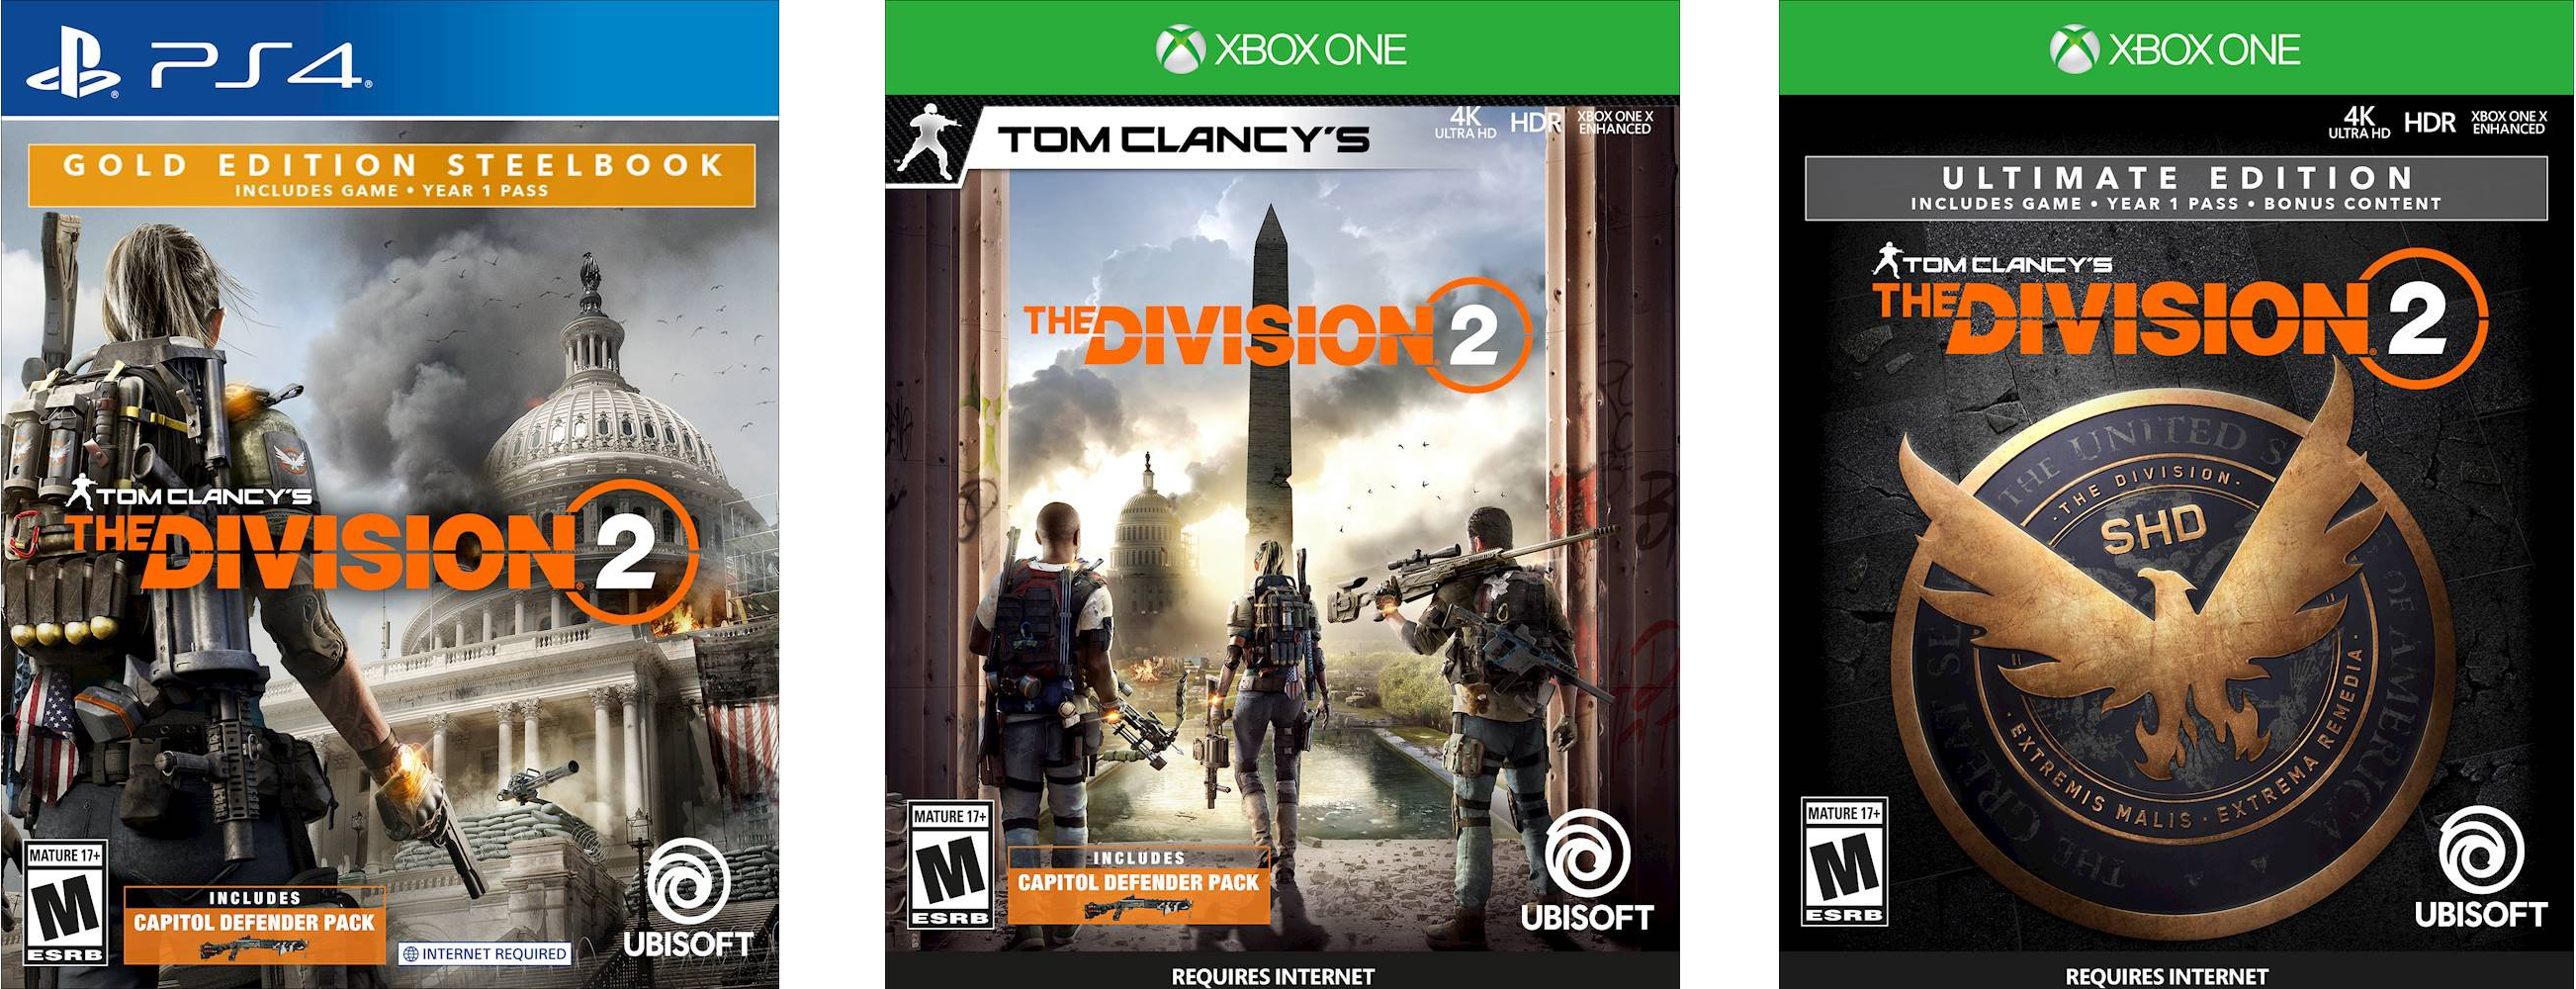 The Division 2: Which Edition to Buy?